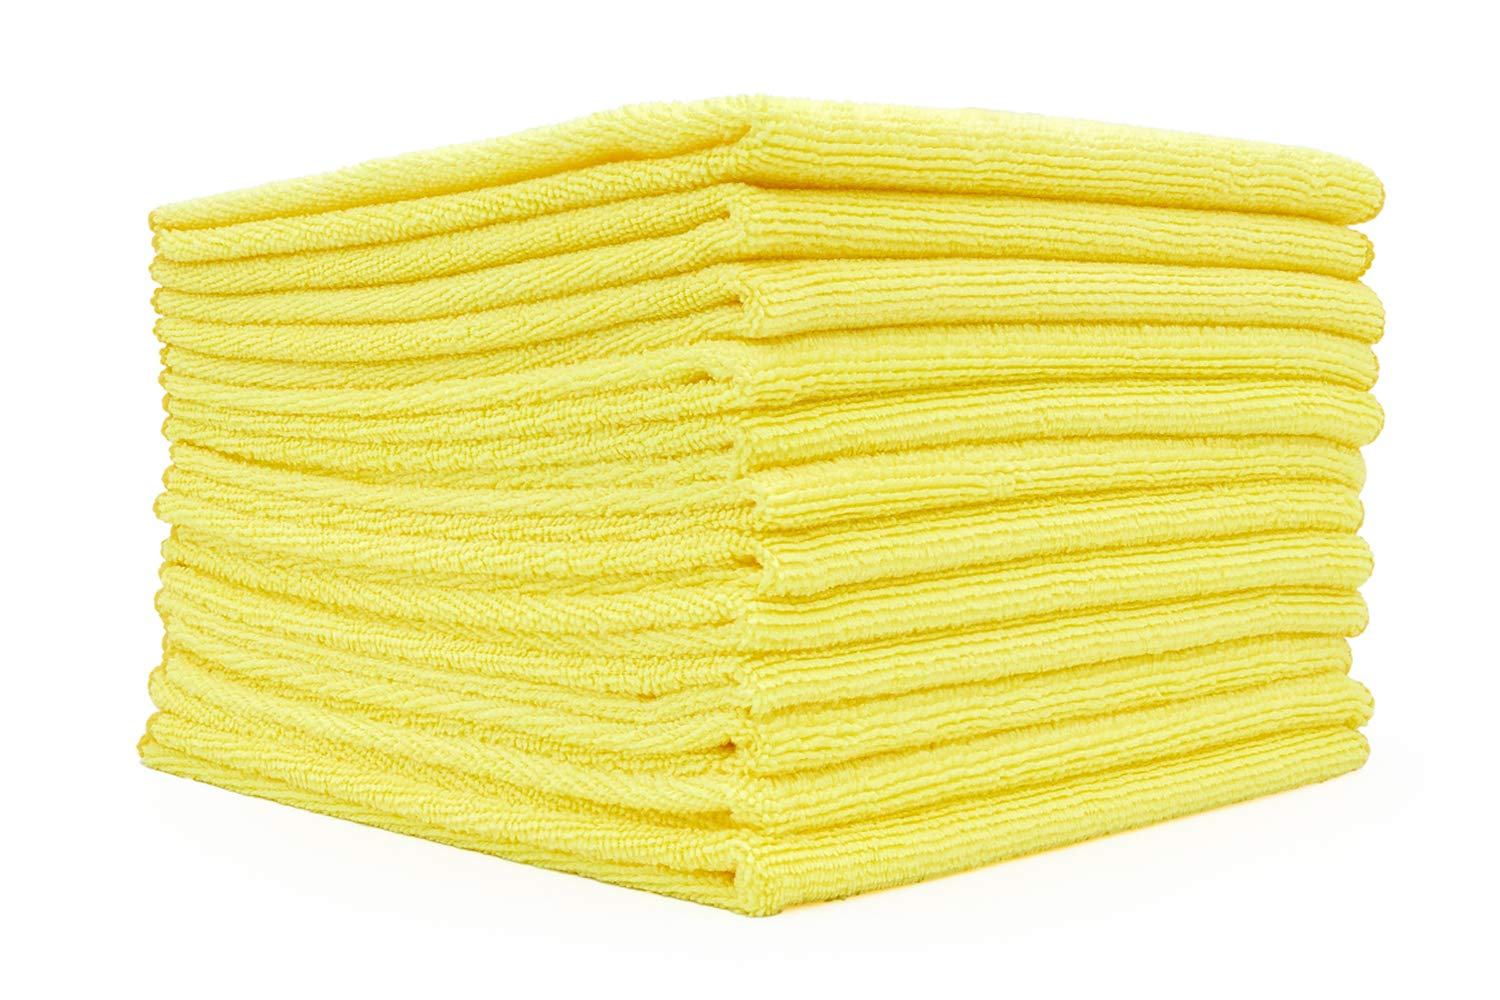 (12-Pack) 12 in. x 12 in. Commercial Grade All-Purpose Microfiber Highly Absorbent, LINT-Free, Streak-Free Cleaning Towels - THE RAG COMPANY (Yellow) by The Rag Company